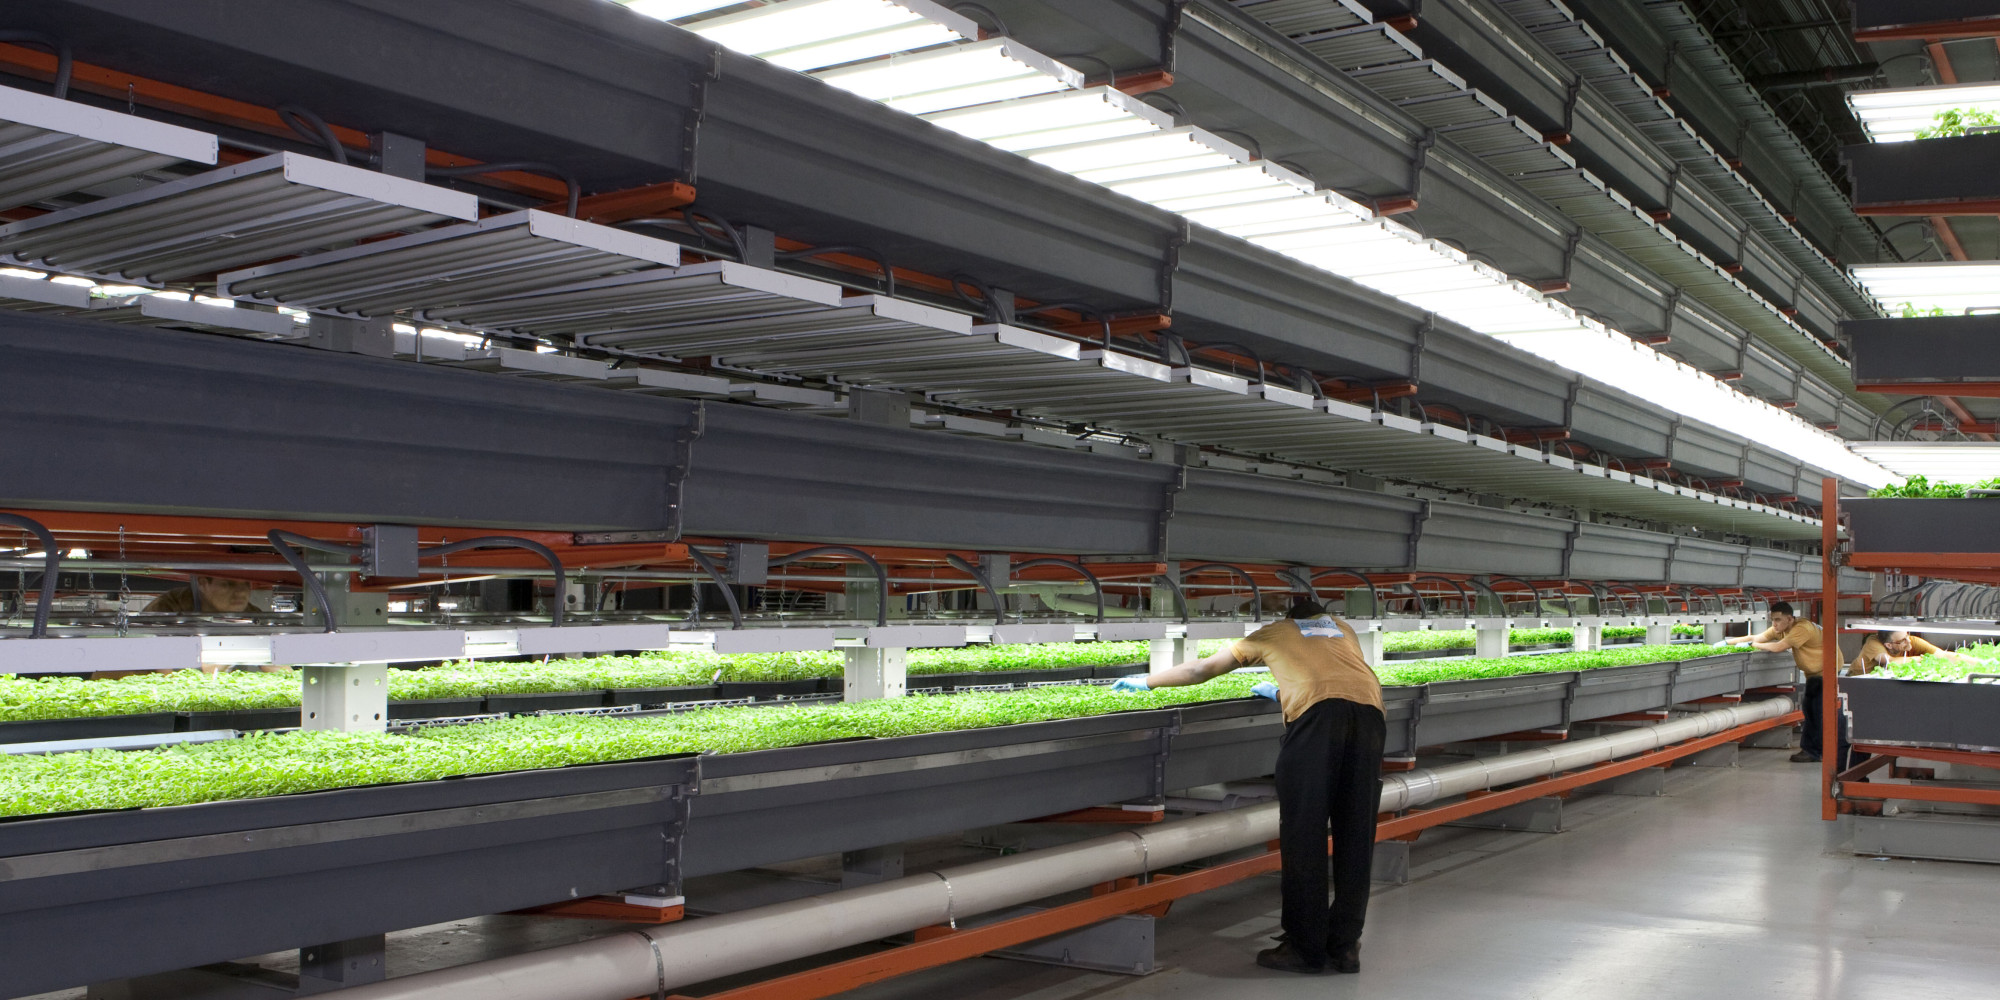 In this photo provided by FarmedHere, a worker checks crops at the indoor vertical farm in Bedford Park, Ill. on Feb. 20, 2013. The farm, in an old warehouse, has crops that include basil, arugula and microgreens, sold at grocery stores in Chicago and its suburbs. Officials at FarmedHere plan to expand growing space to a massive 150,000 square feet by the end of next year. It is currently has about 20 percent of that growing space now. (AP Photo/Heather Aitken)